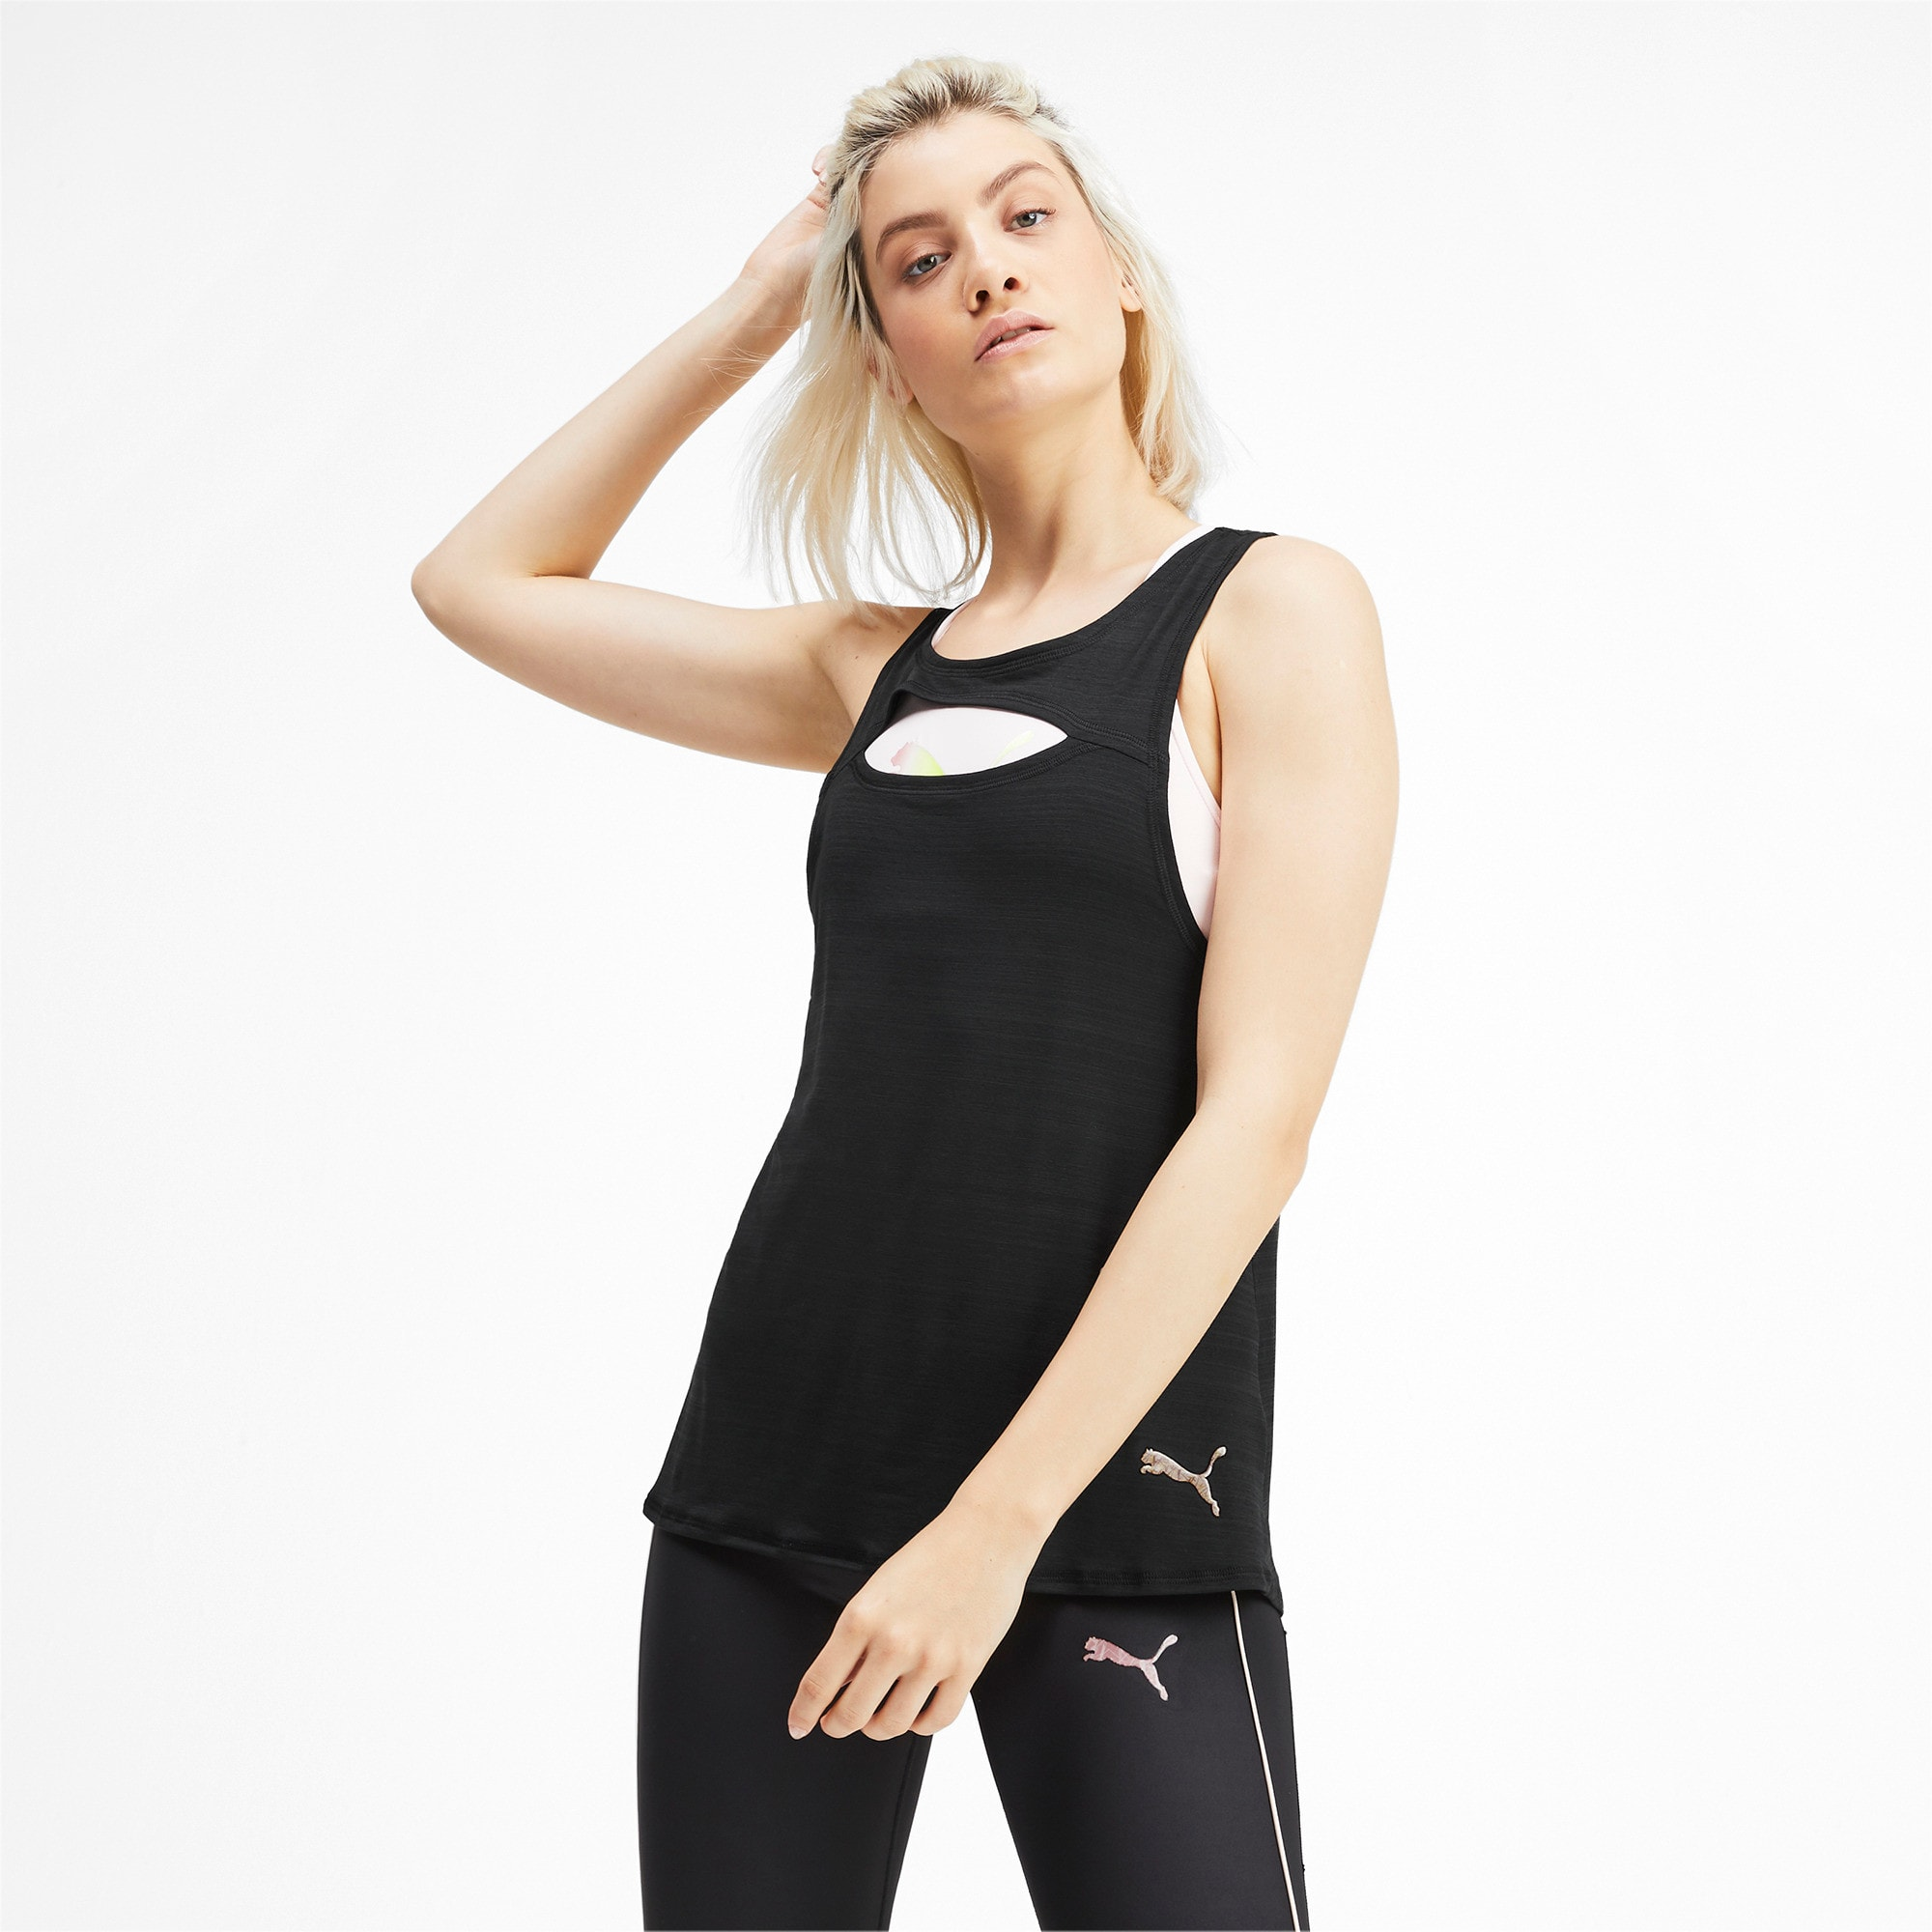 SHIFT Knitted Women's Training Tank Top, Puma Black, large